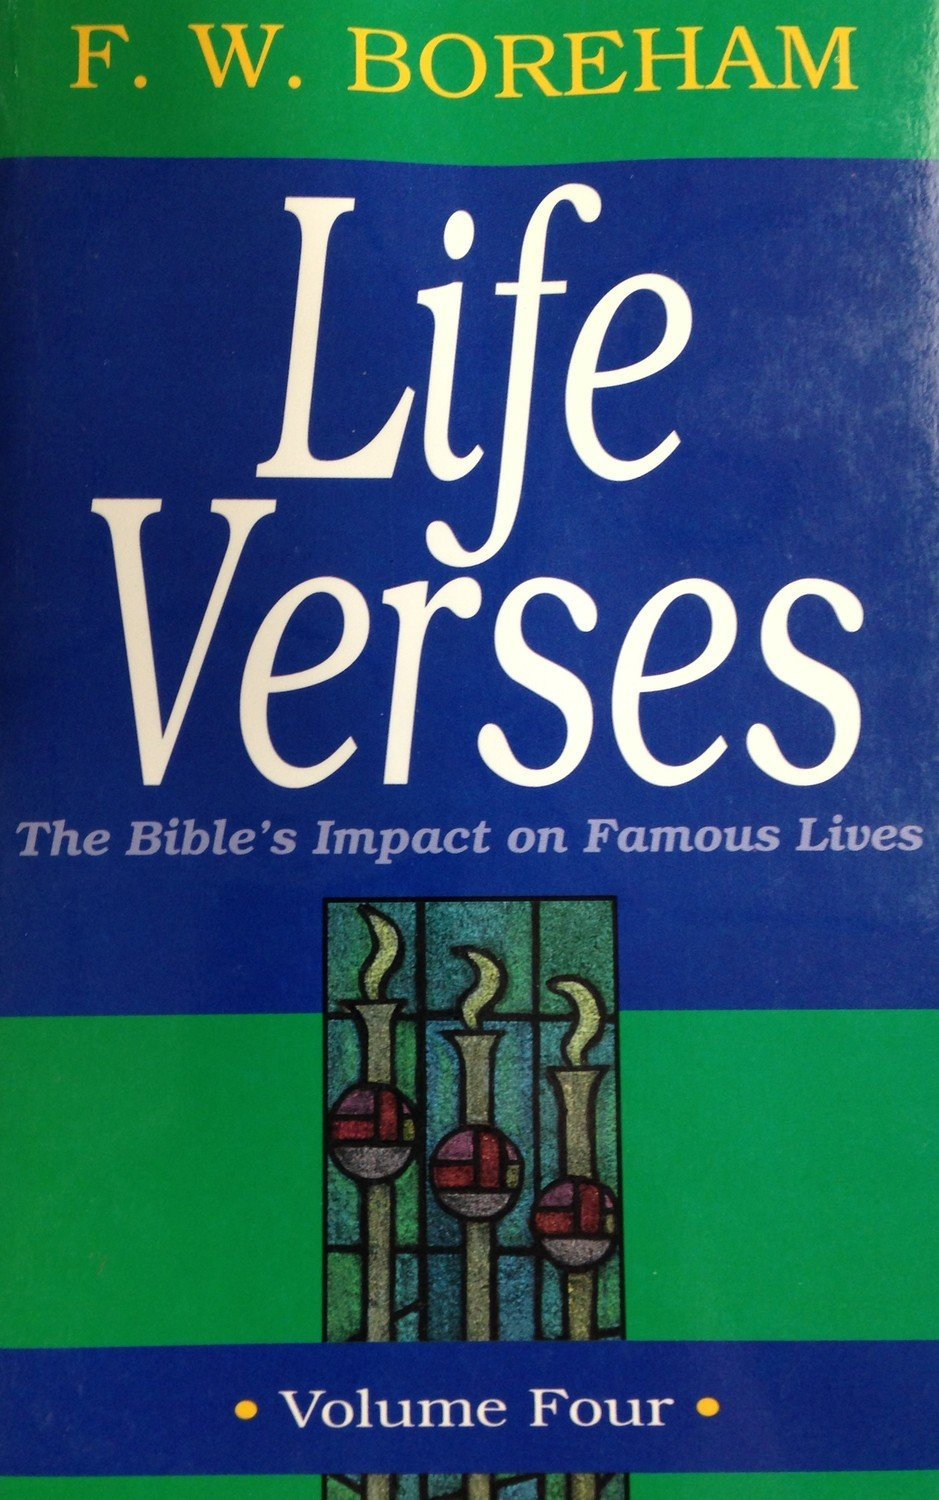 Life Verses:  The Bible's Impact on Famous Lives Volume 4 by F.W. Boreham